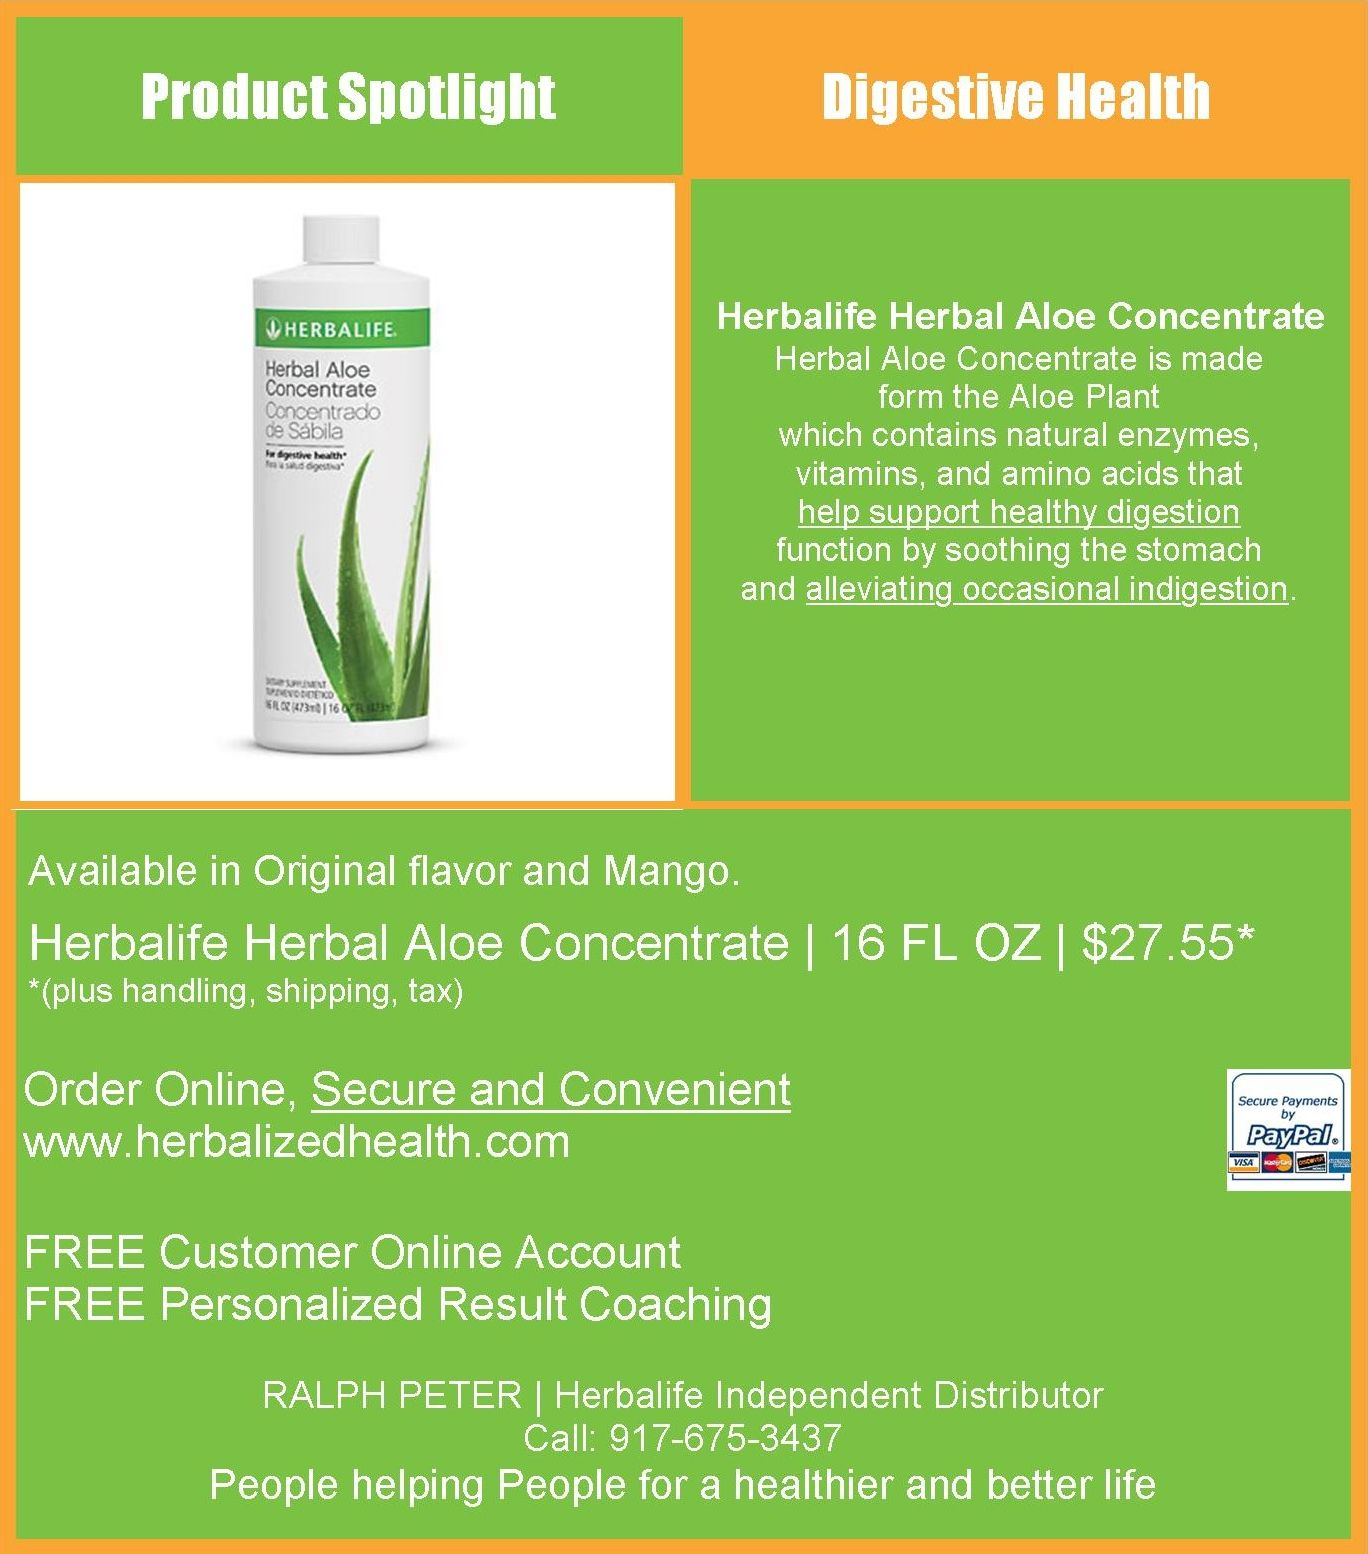 Herbalife Herbal Aloe Concentrate Herbal Aloe Concentrate Is Made Form The Aloe Plant Which Contains Natural E Digestive Health Healthy Digestion Aloe Plant